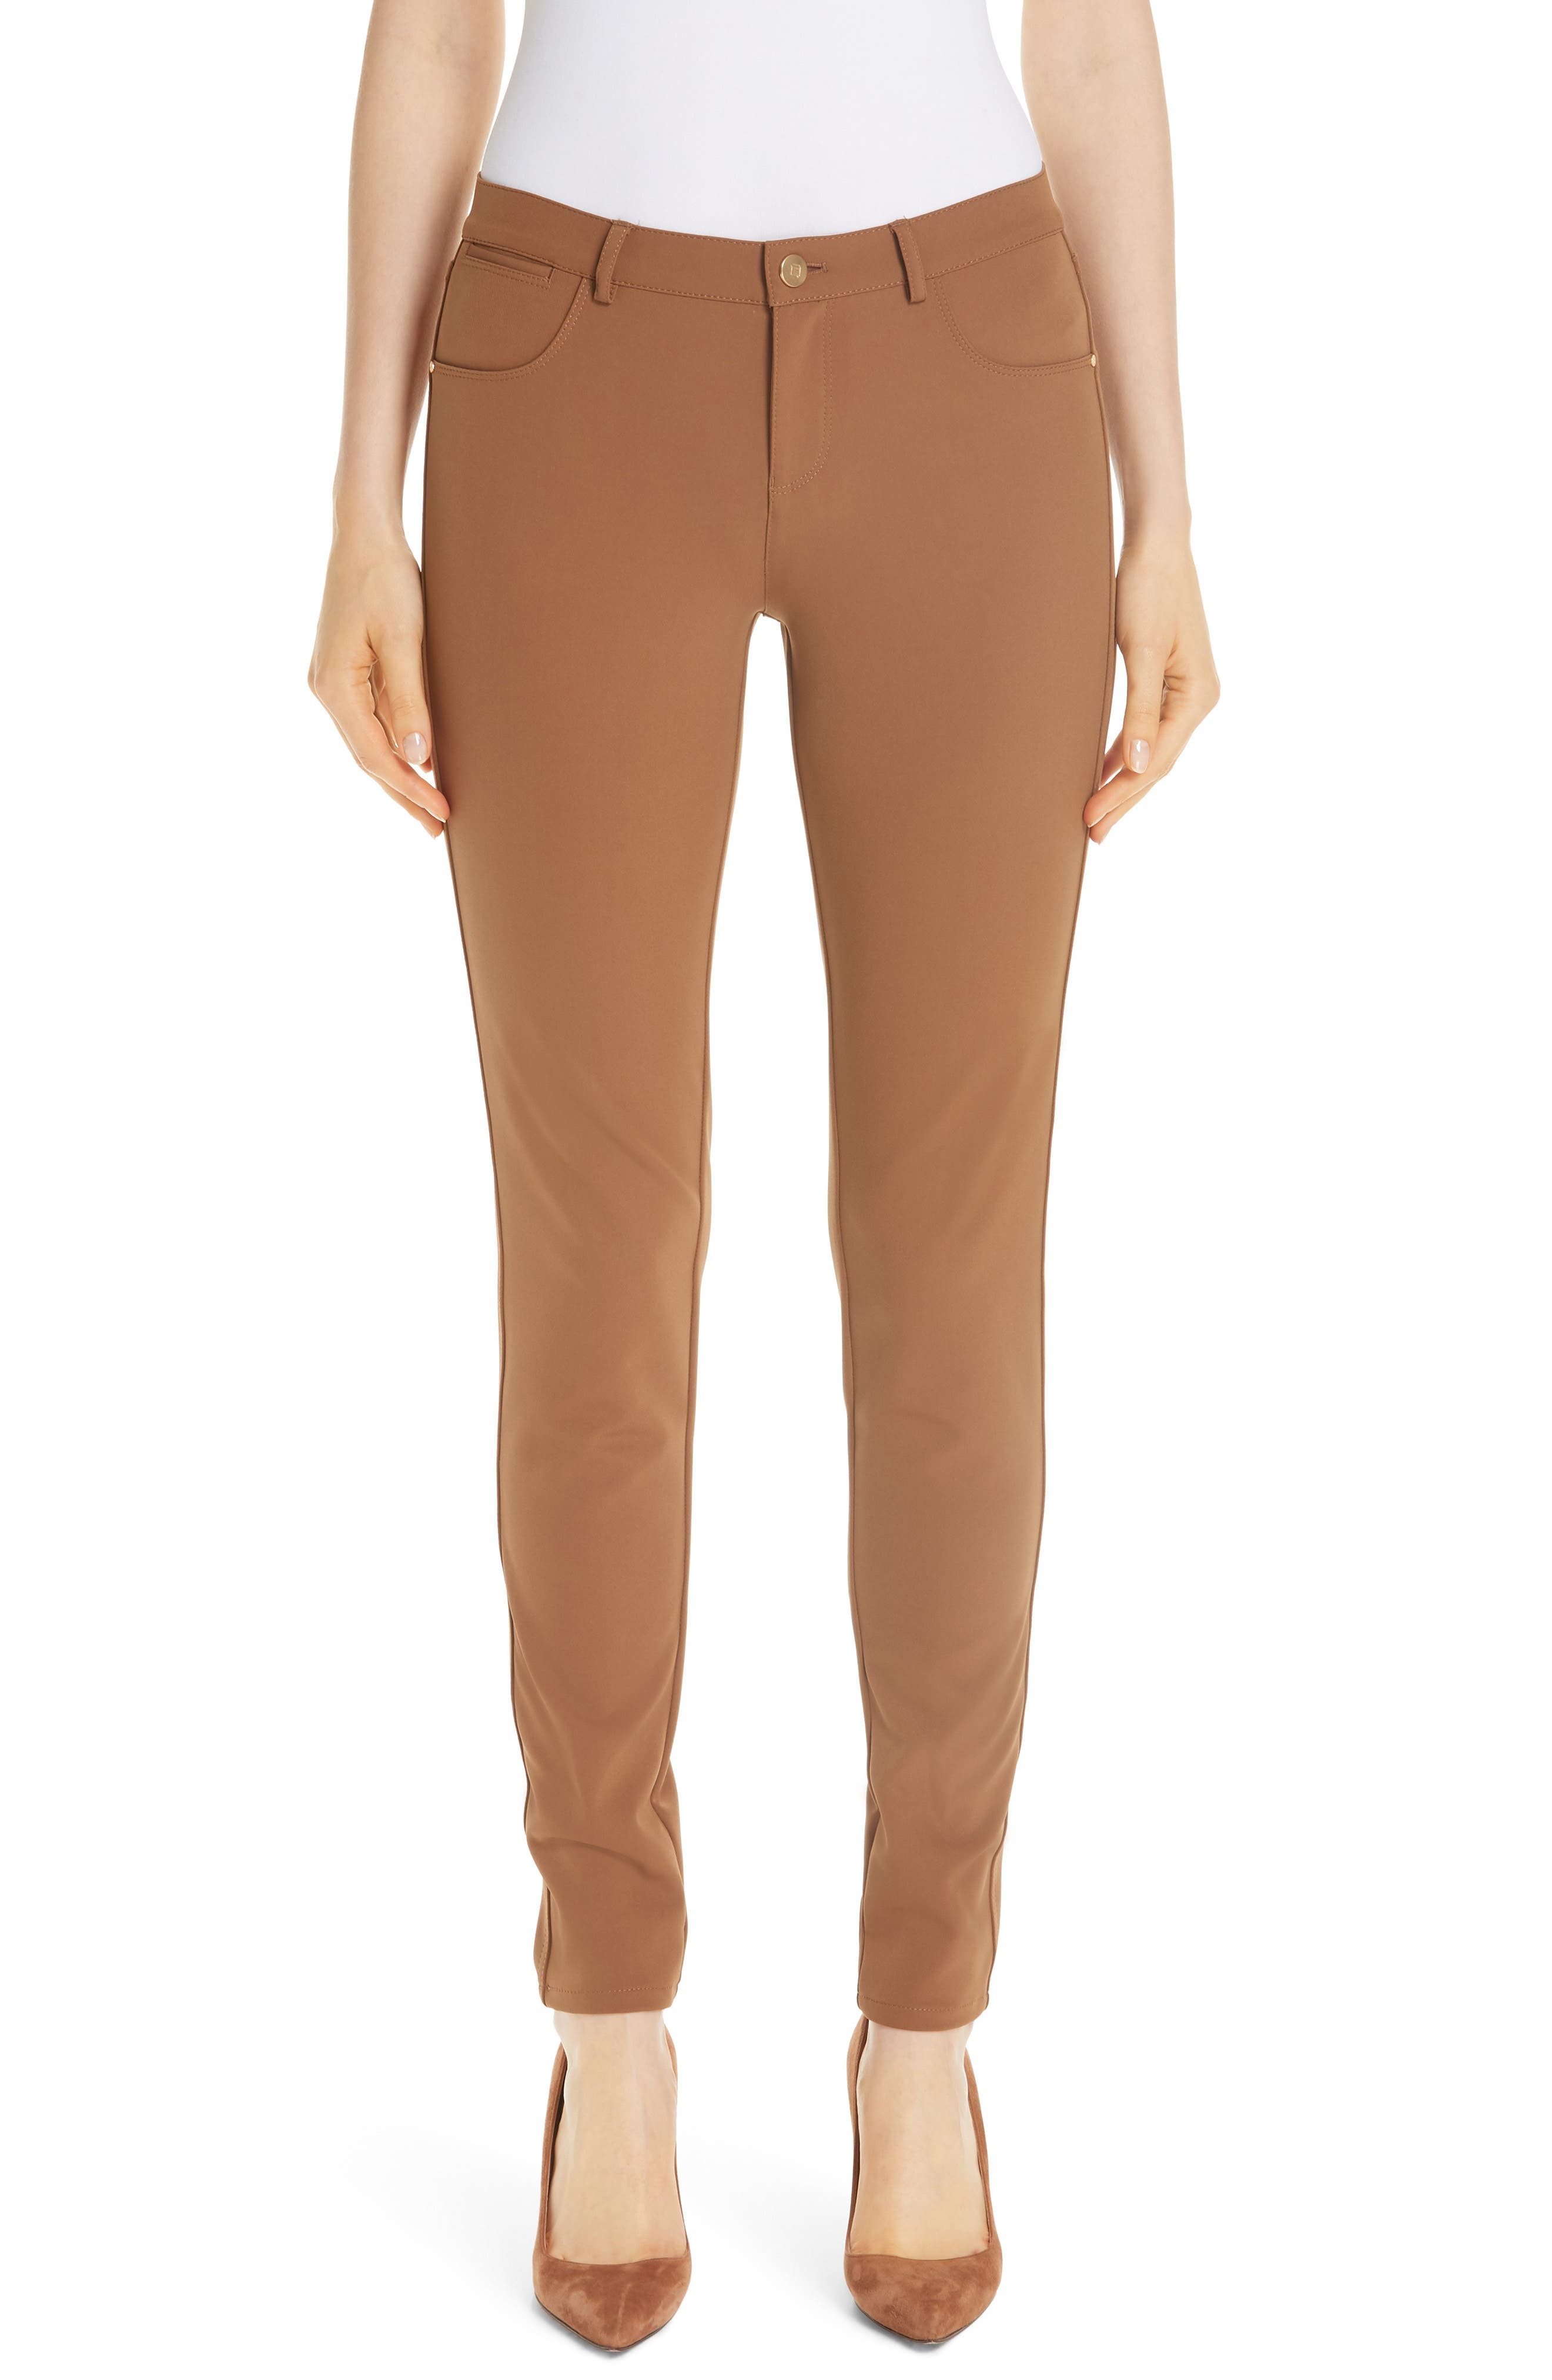 Mercer Acclaimed Stretch Mid-Rise Skinny Jeans in Maple